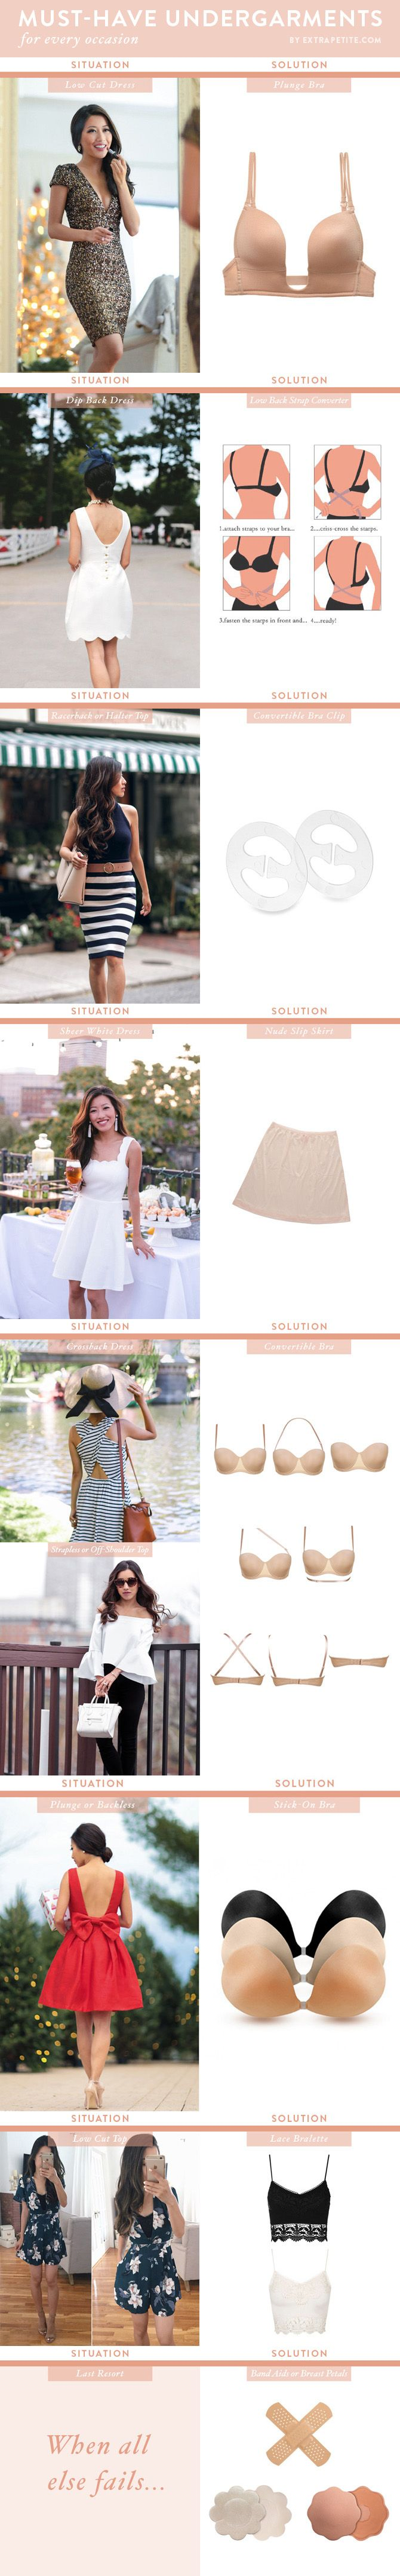 Must-have undergarments for every type of outfit! The right bra for backless dresses, plunging low cut necklines, sheer clothing, and more (click image to read!)